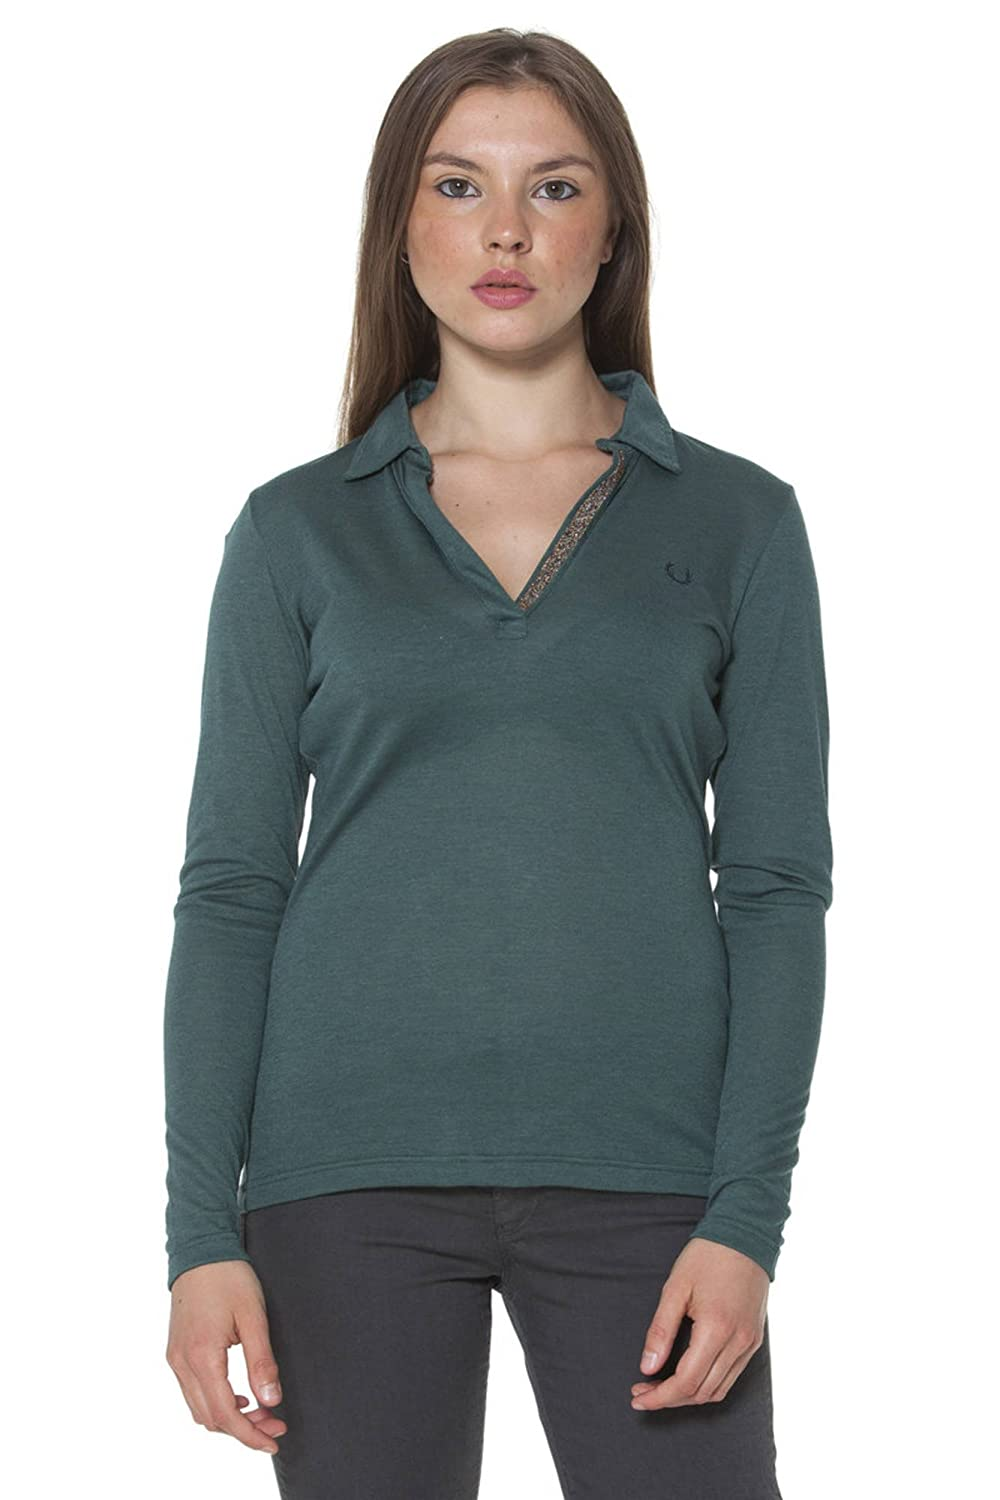 Fred Perry 31052080 Polo con Las Mangas largas Mujer Verde V0031 S ...